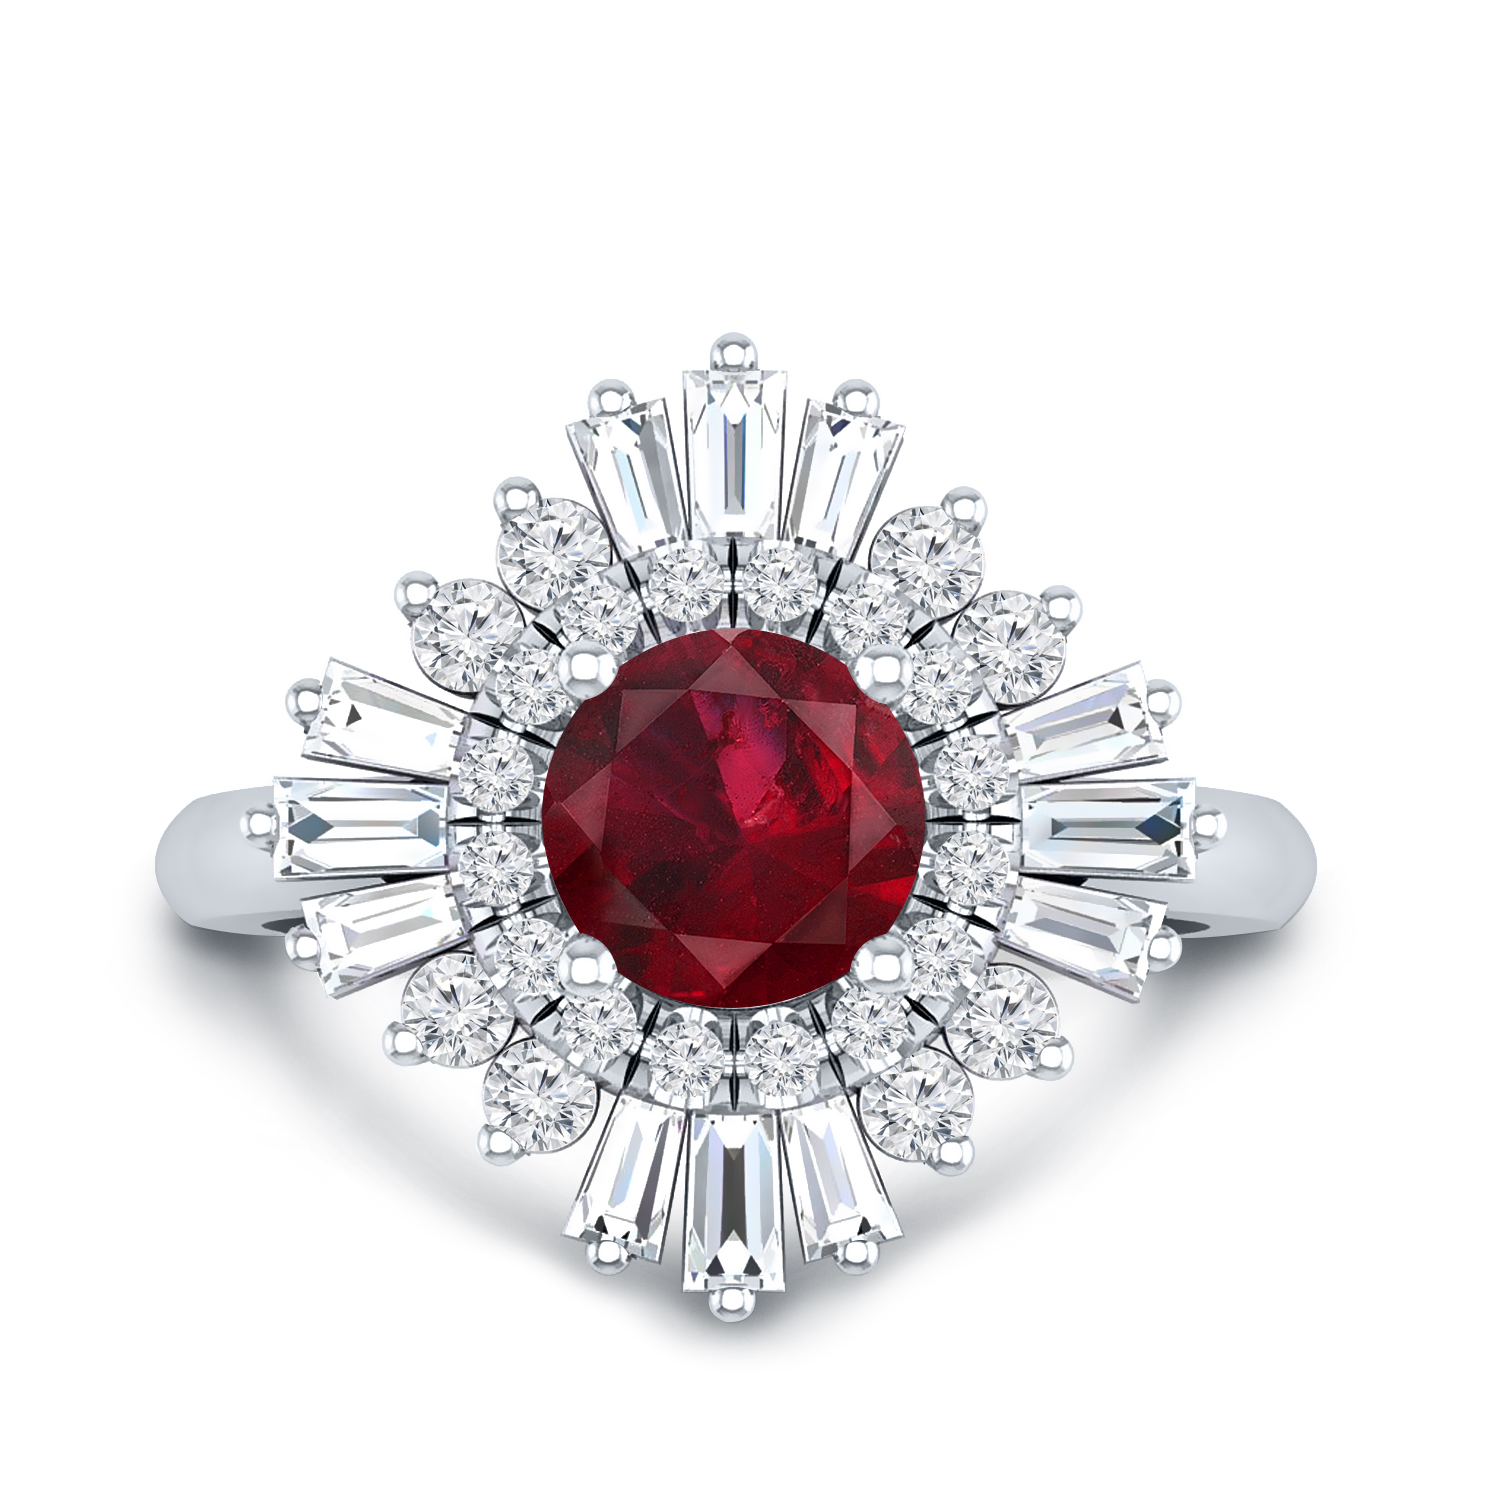 CHARLESTON Ballerina Halo Ruby Engagement Ring In 14K White Gold With 0.50 Carat Round Stone